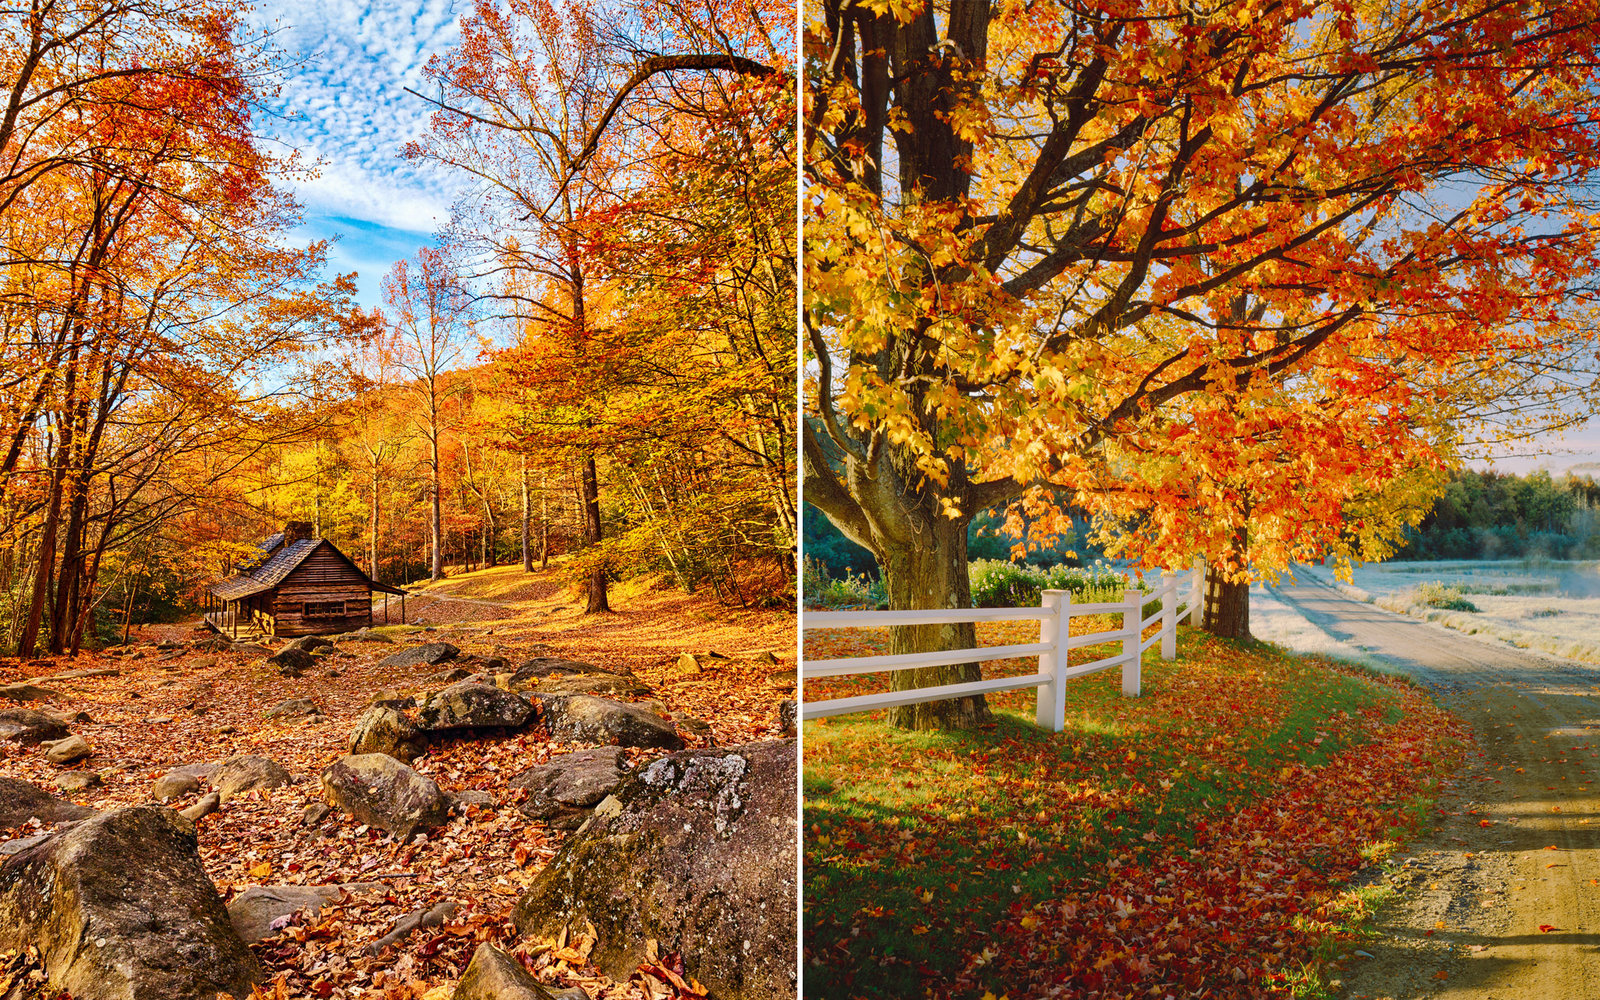 Late Fall Wallpaper Nature The Only Map You Need To Plan A Perfect Fall Foliage Trip